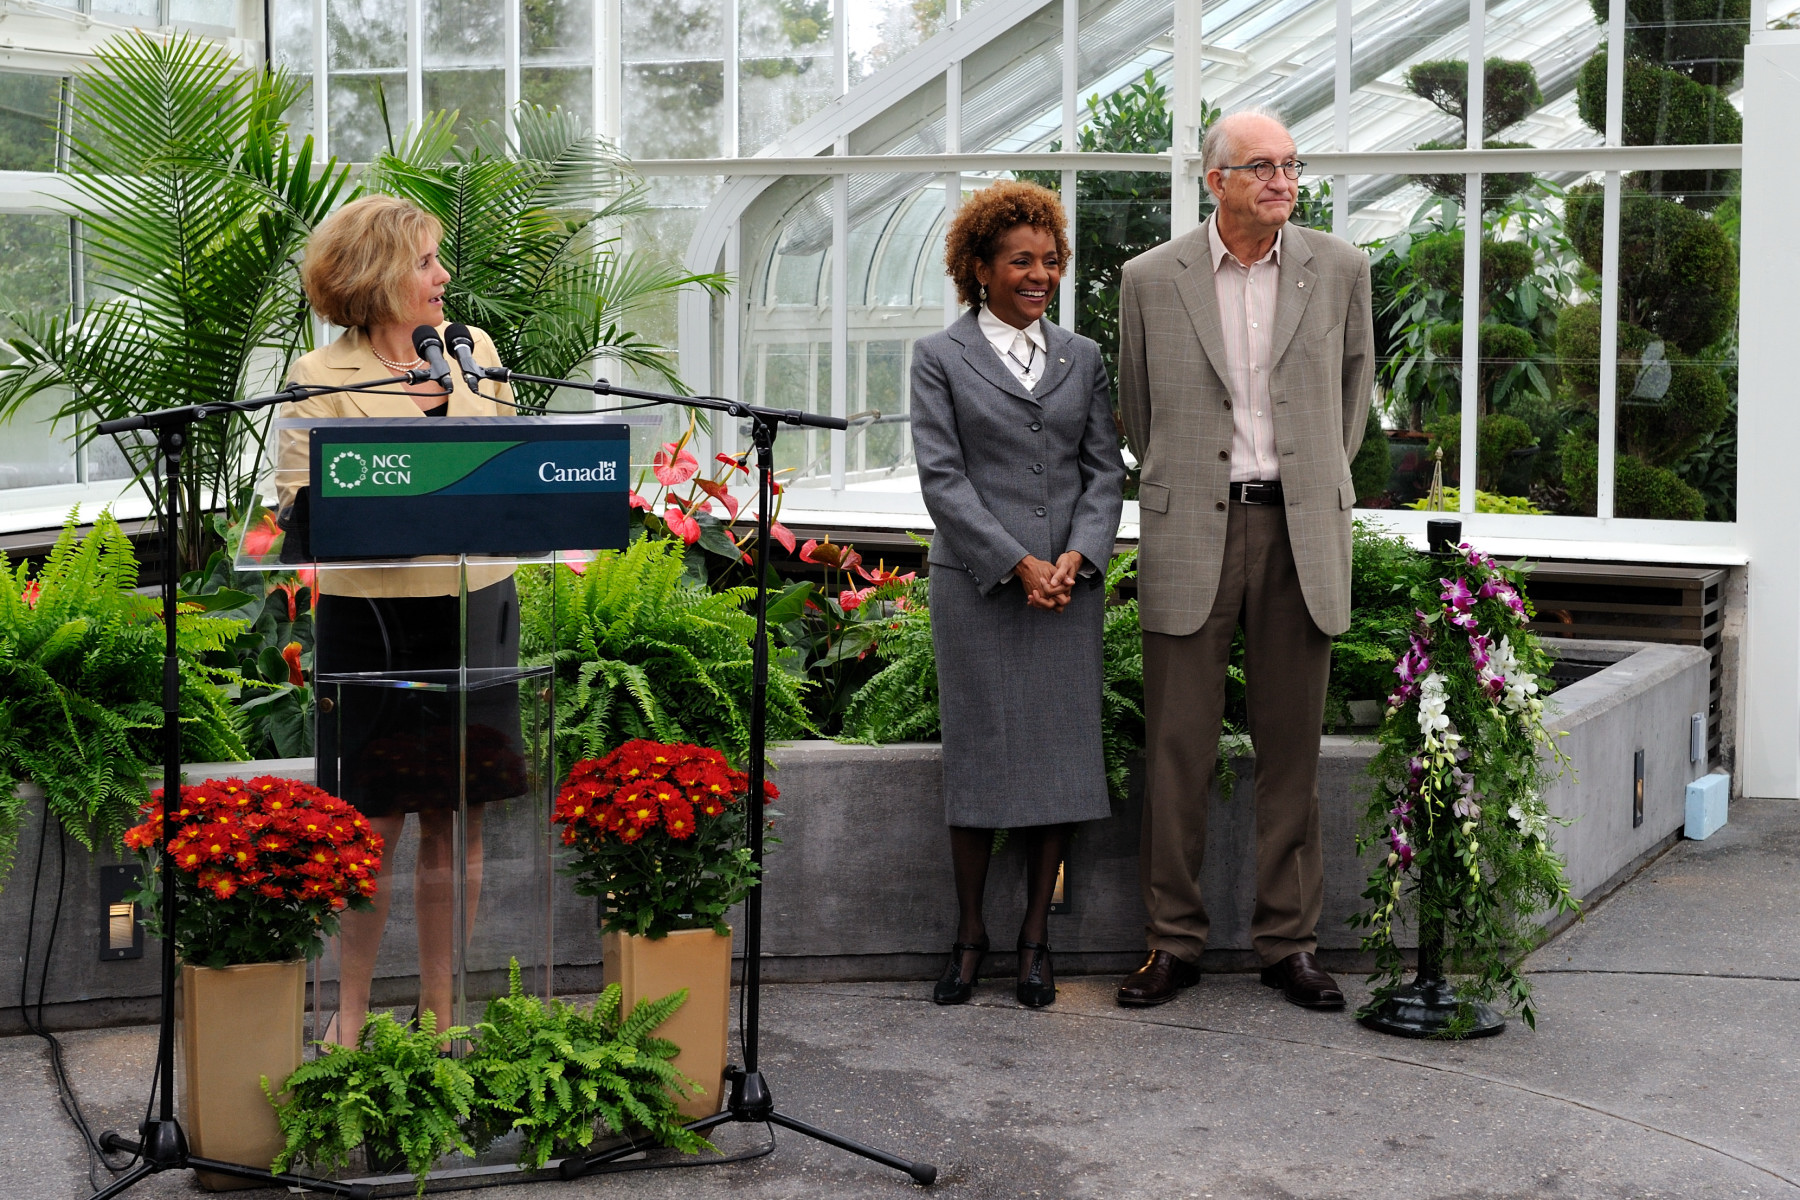 Marie Lemay, Chief Executive Officer at the NCC, happily highlighted the restoration of the Greenhouse.